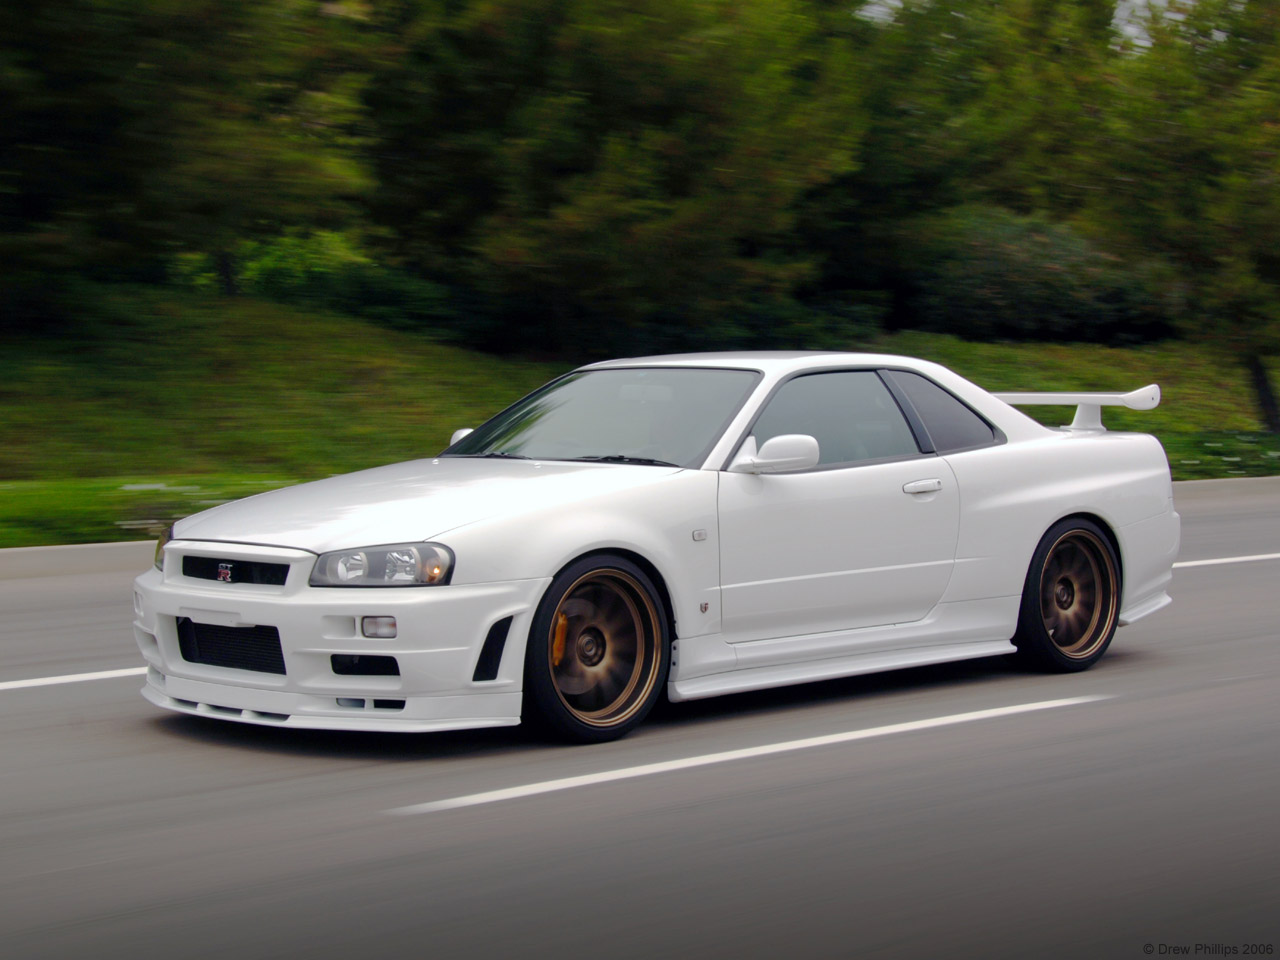 nissan skyline r34 gtr its my car club. Black Bedroom Furniture Sets. Home Design Ideas